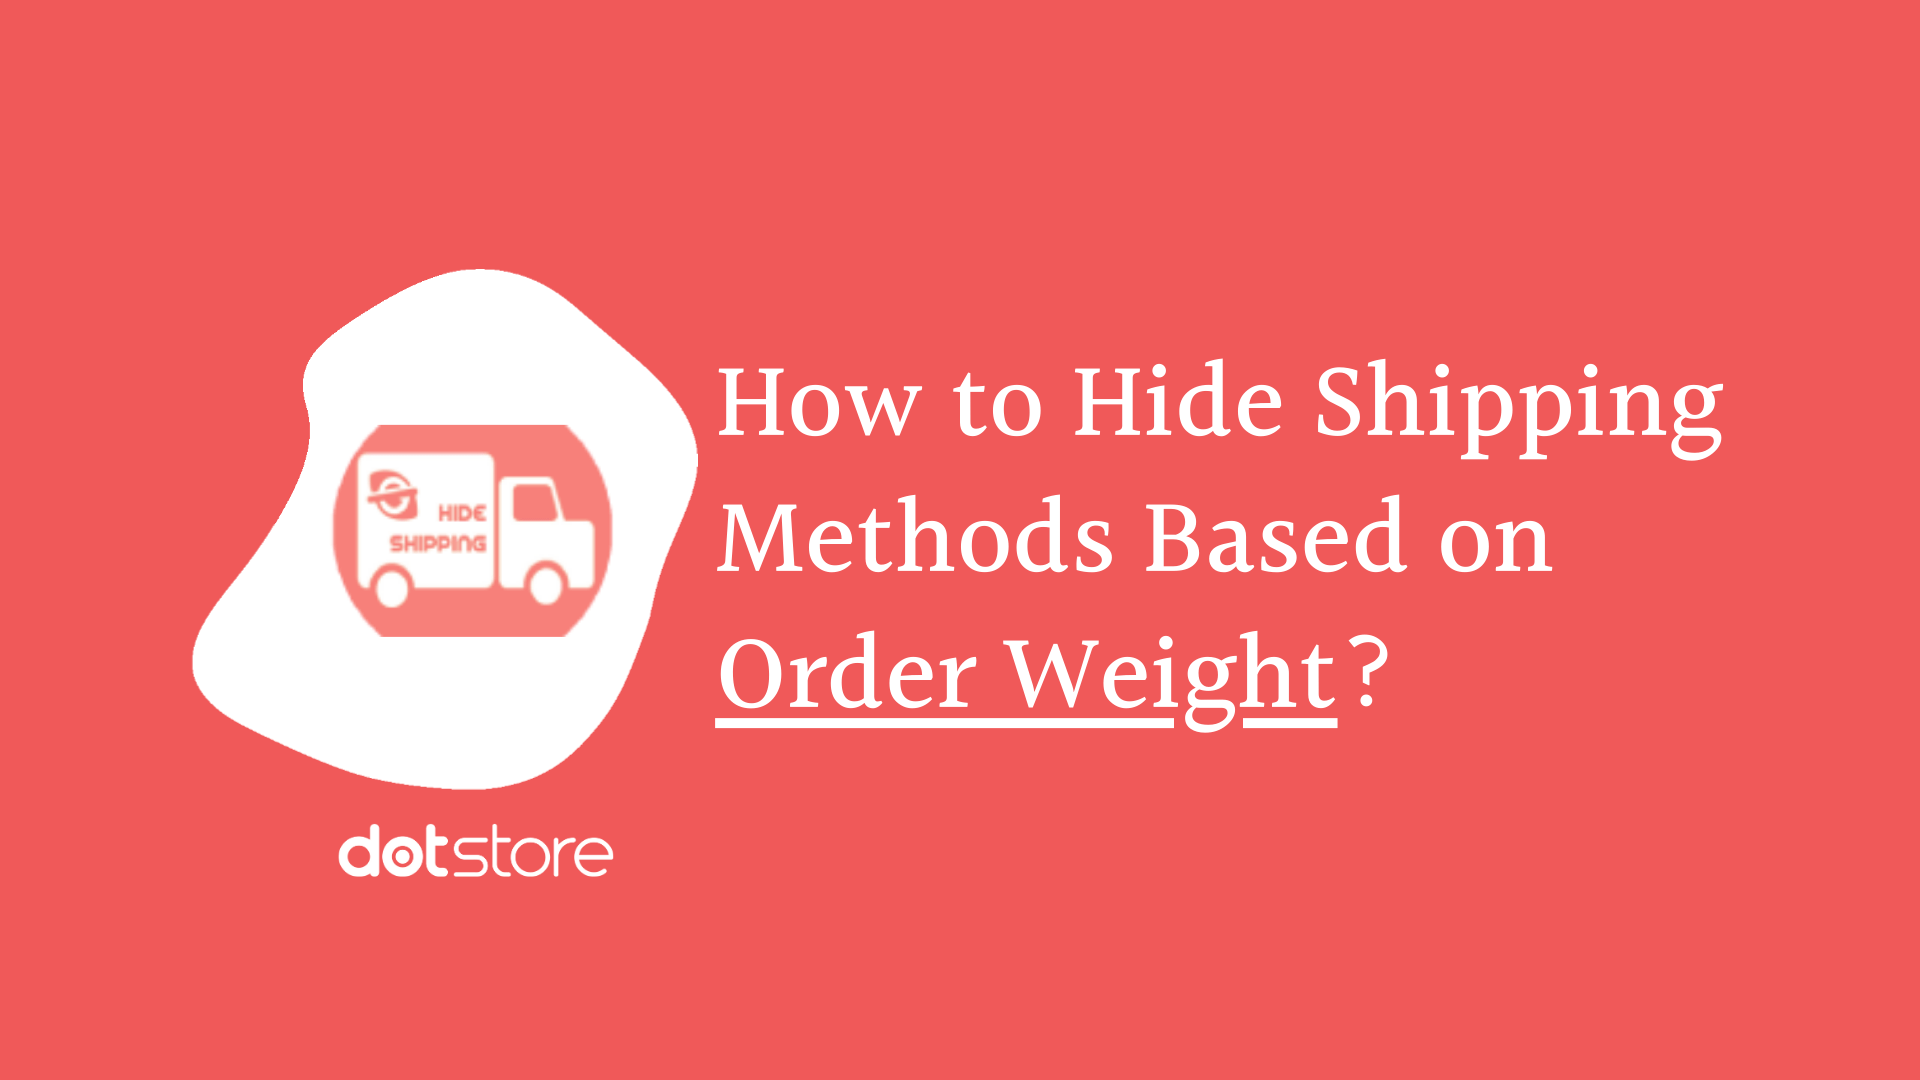 How to Hide Shipping Methods Based on Order Weight?